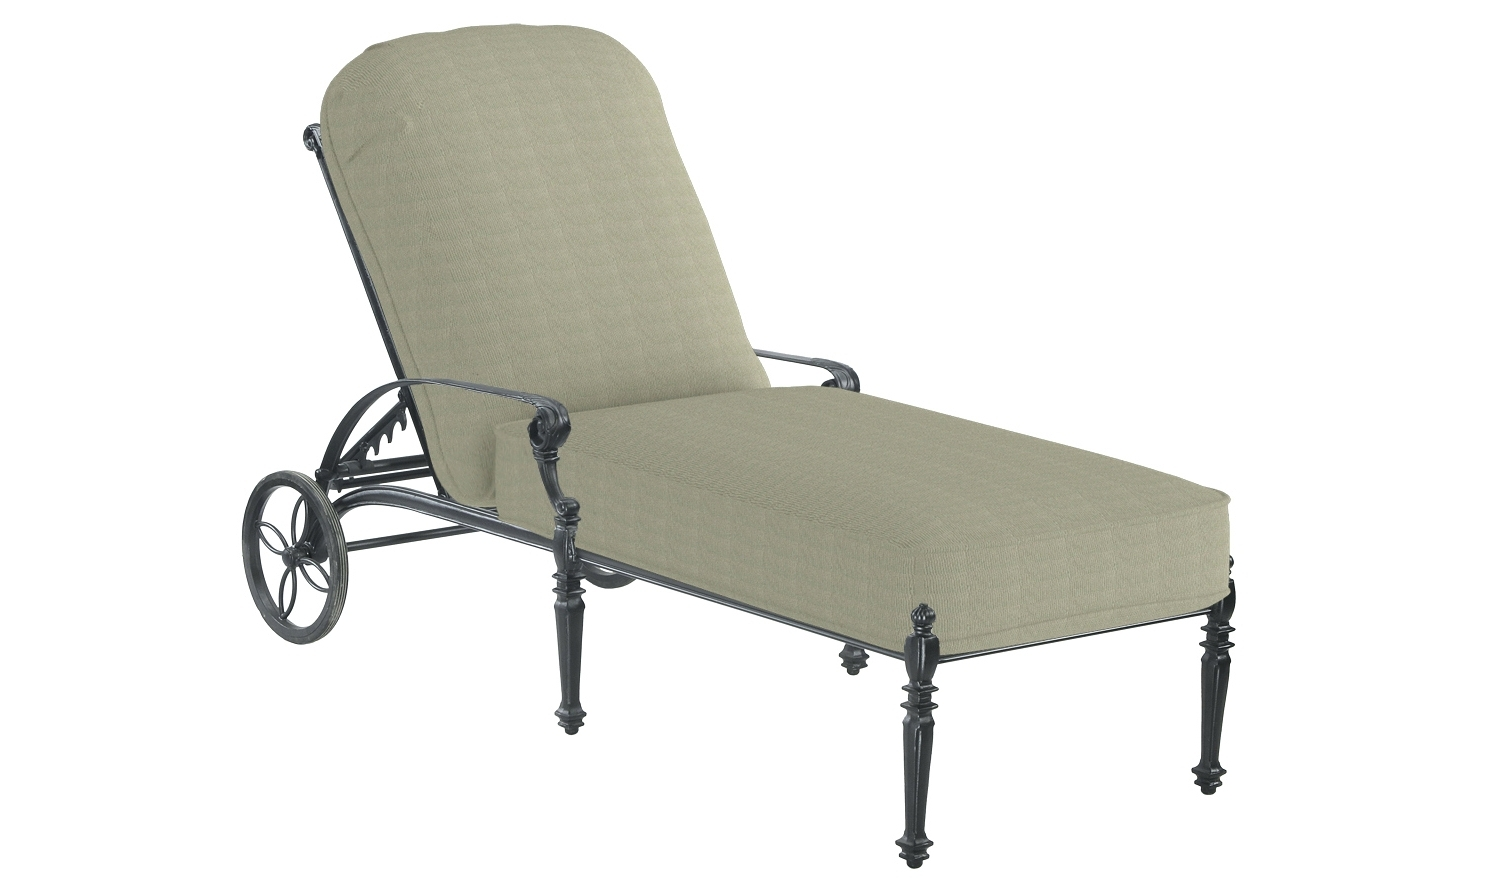 Pvc Pipe Chaise Lounge Chairs • Lounge Chairs Ideas Pertaining To Newest Pvc Chaise Lounges (View 10 of 15)